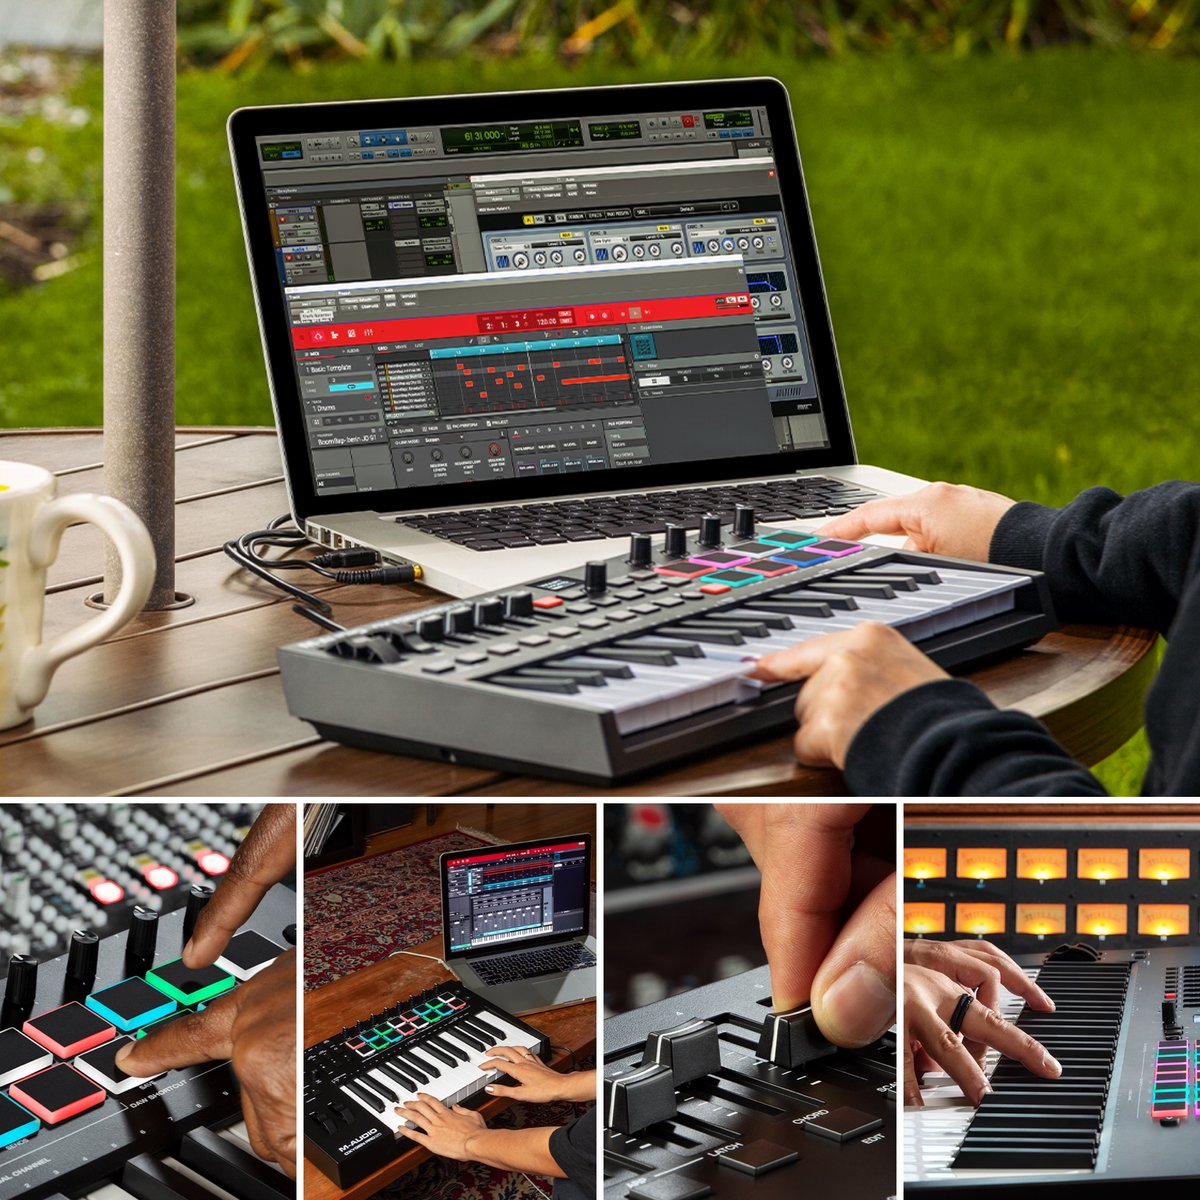 The M-Audio Oxygen Pro series controllers are equipped to take your music production to the next level with Smart Controls, Auto-Mapping, RGB Pads, Arpeggiator and more! Learn More: